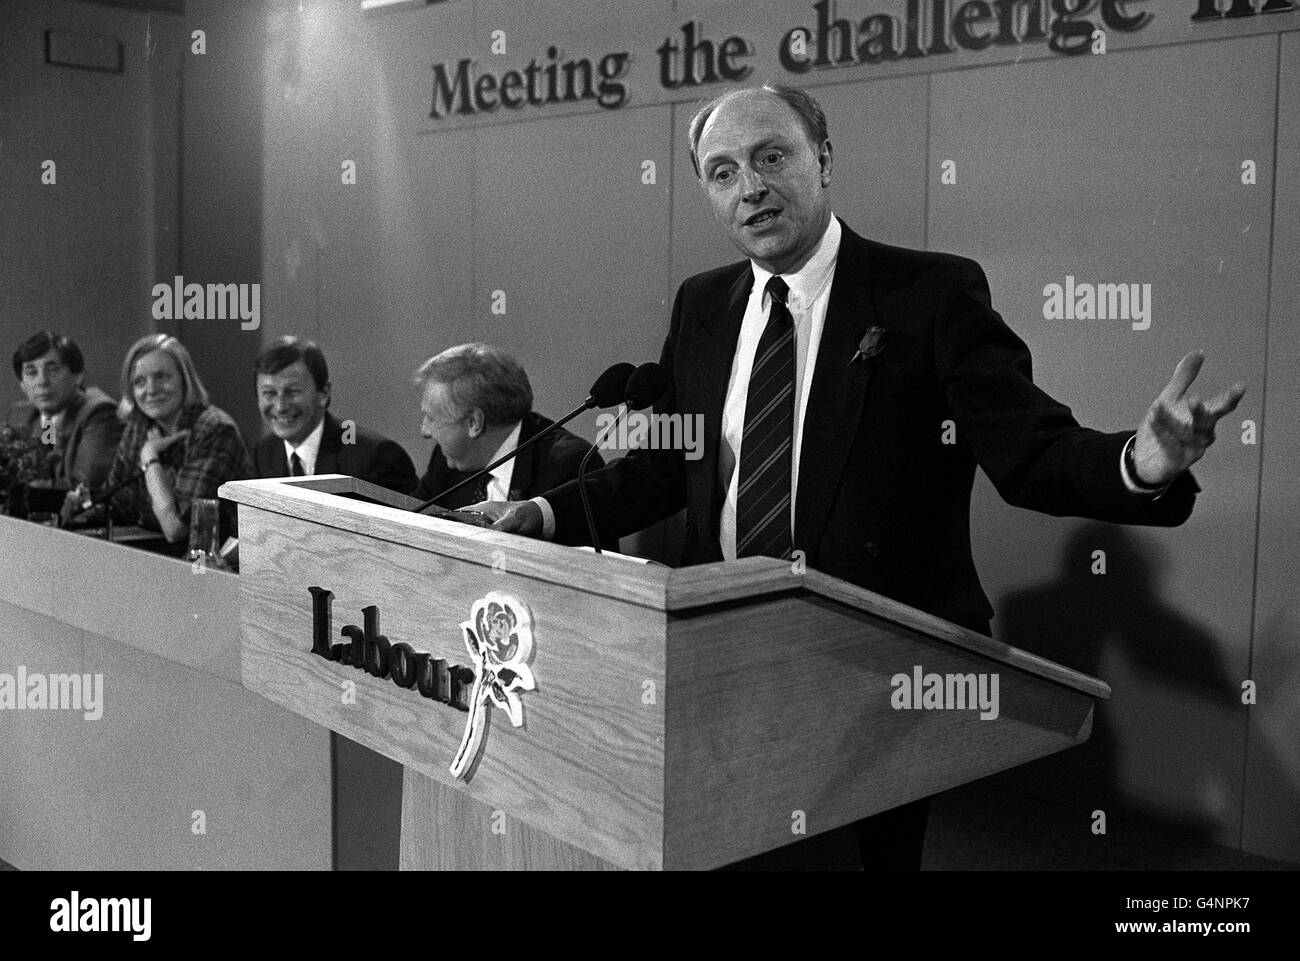 Mr Neil Kinnock/politics - Stock Image